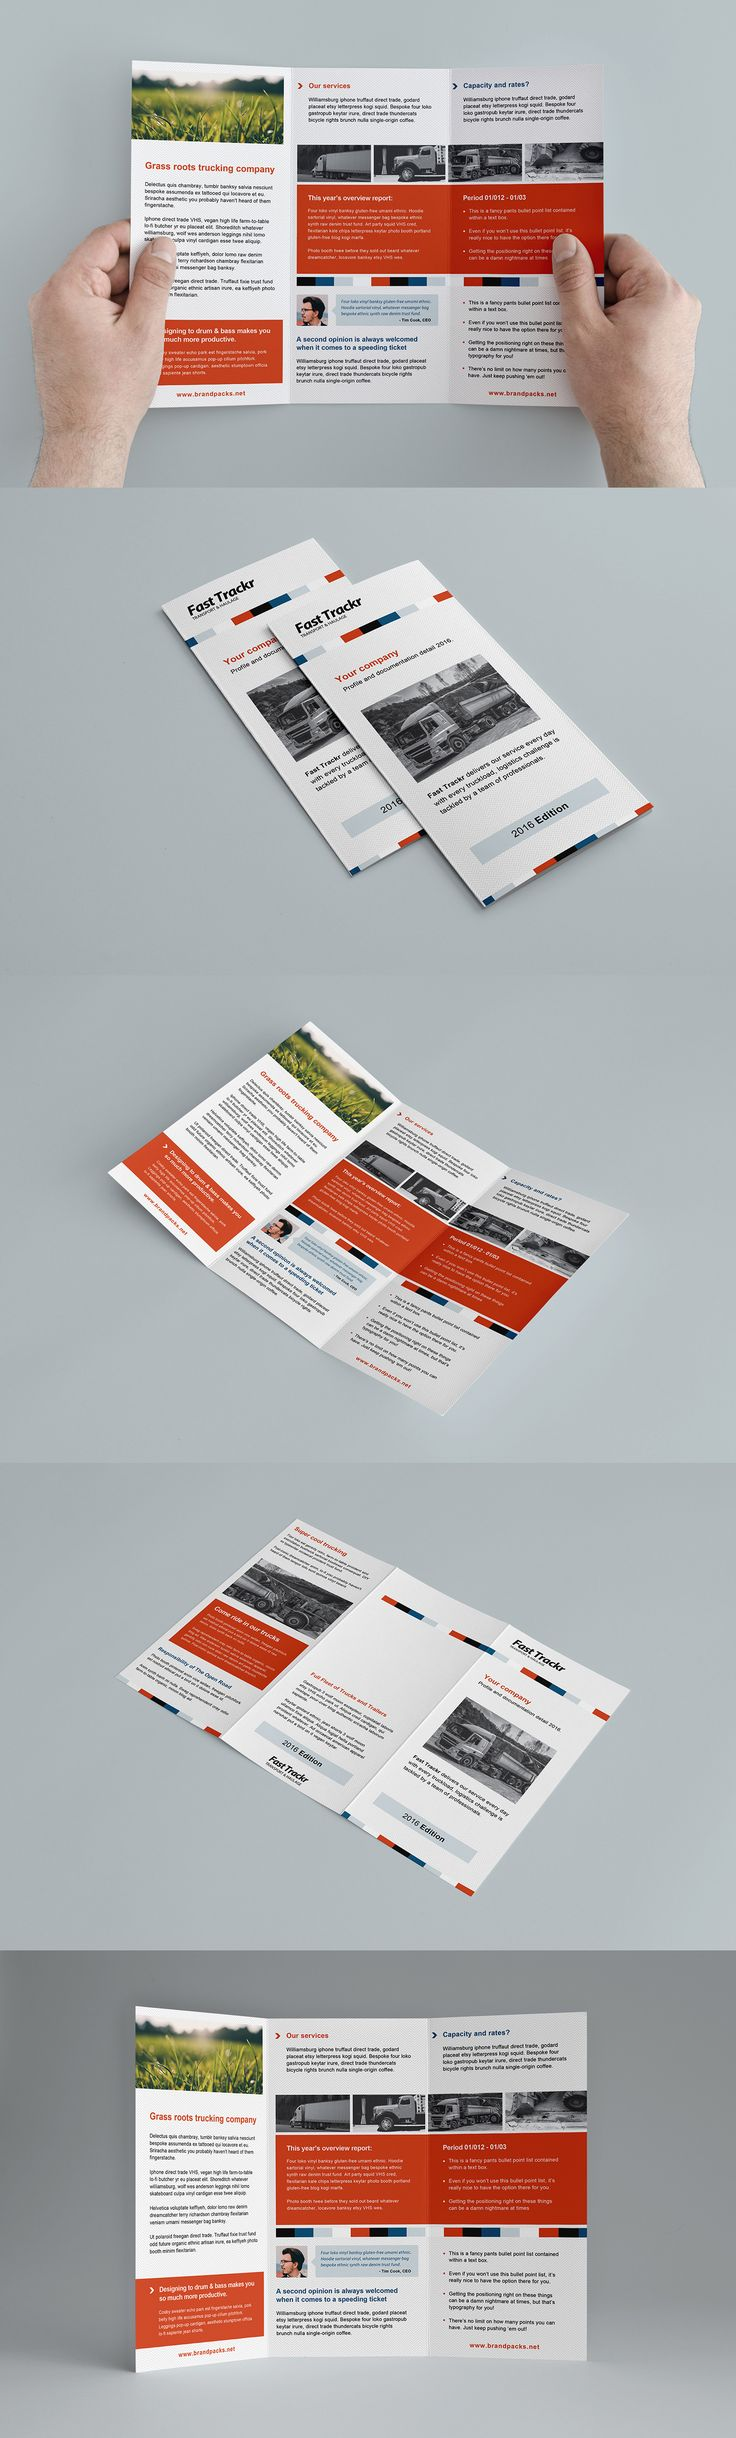 13 best Free Tri-Fold Brochure Templates images on Pinterest ...